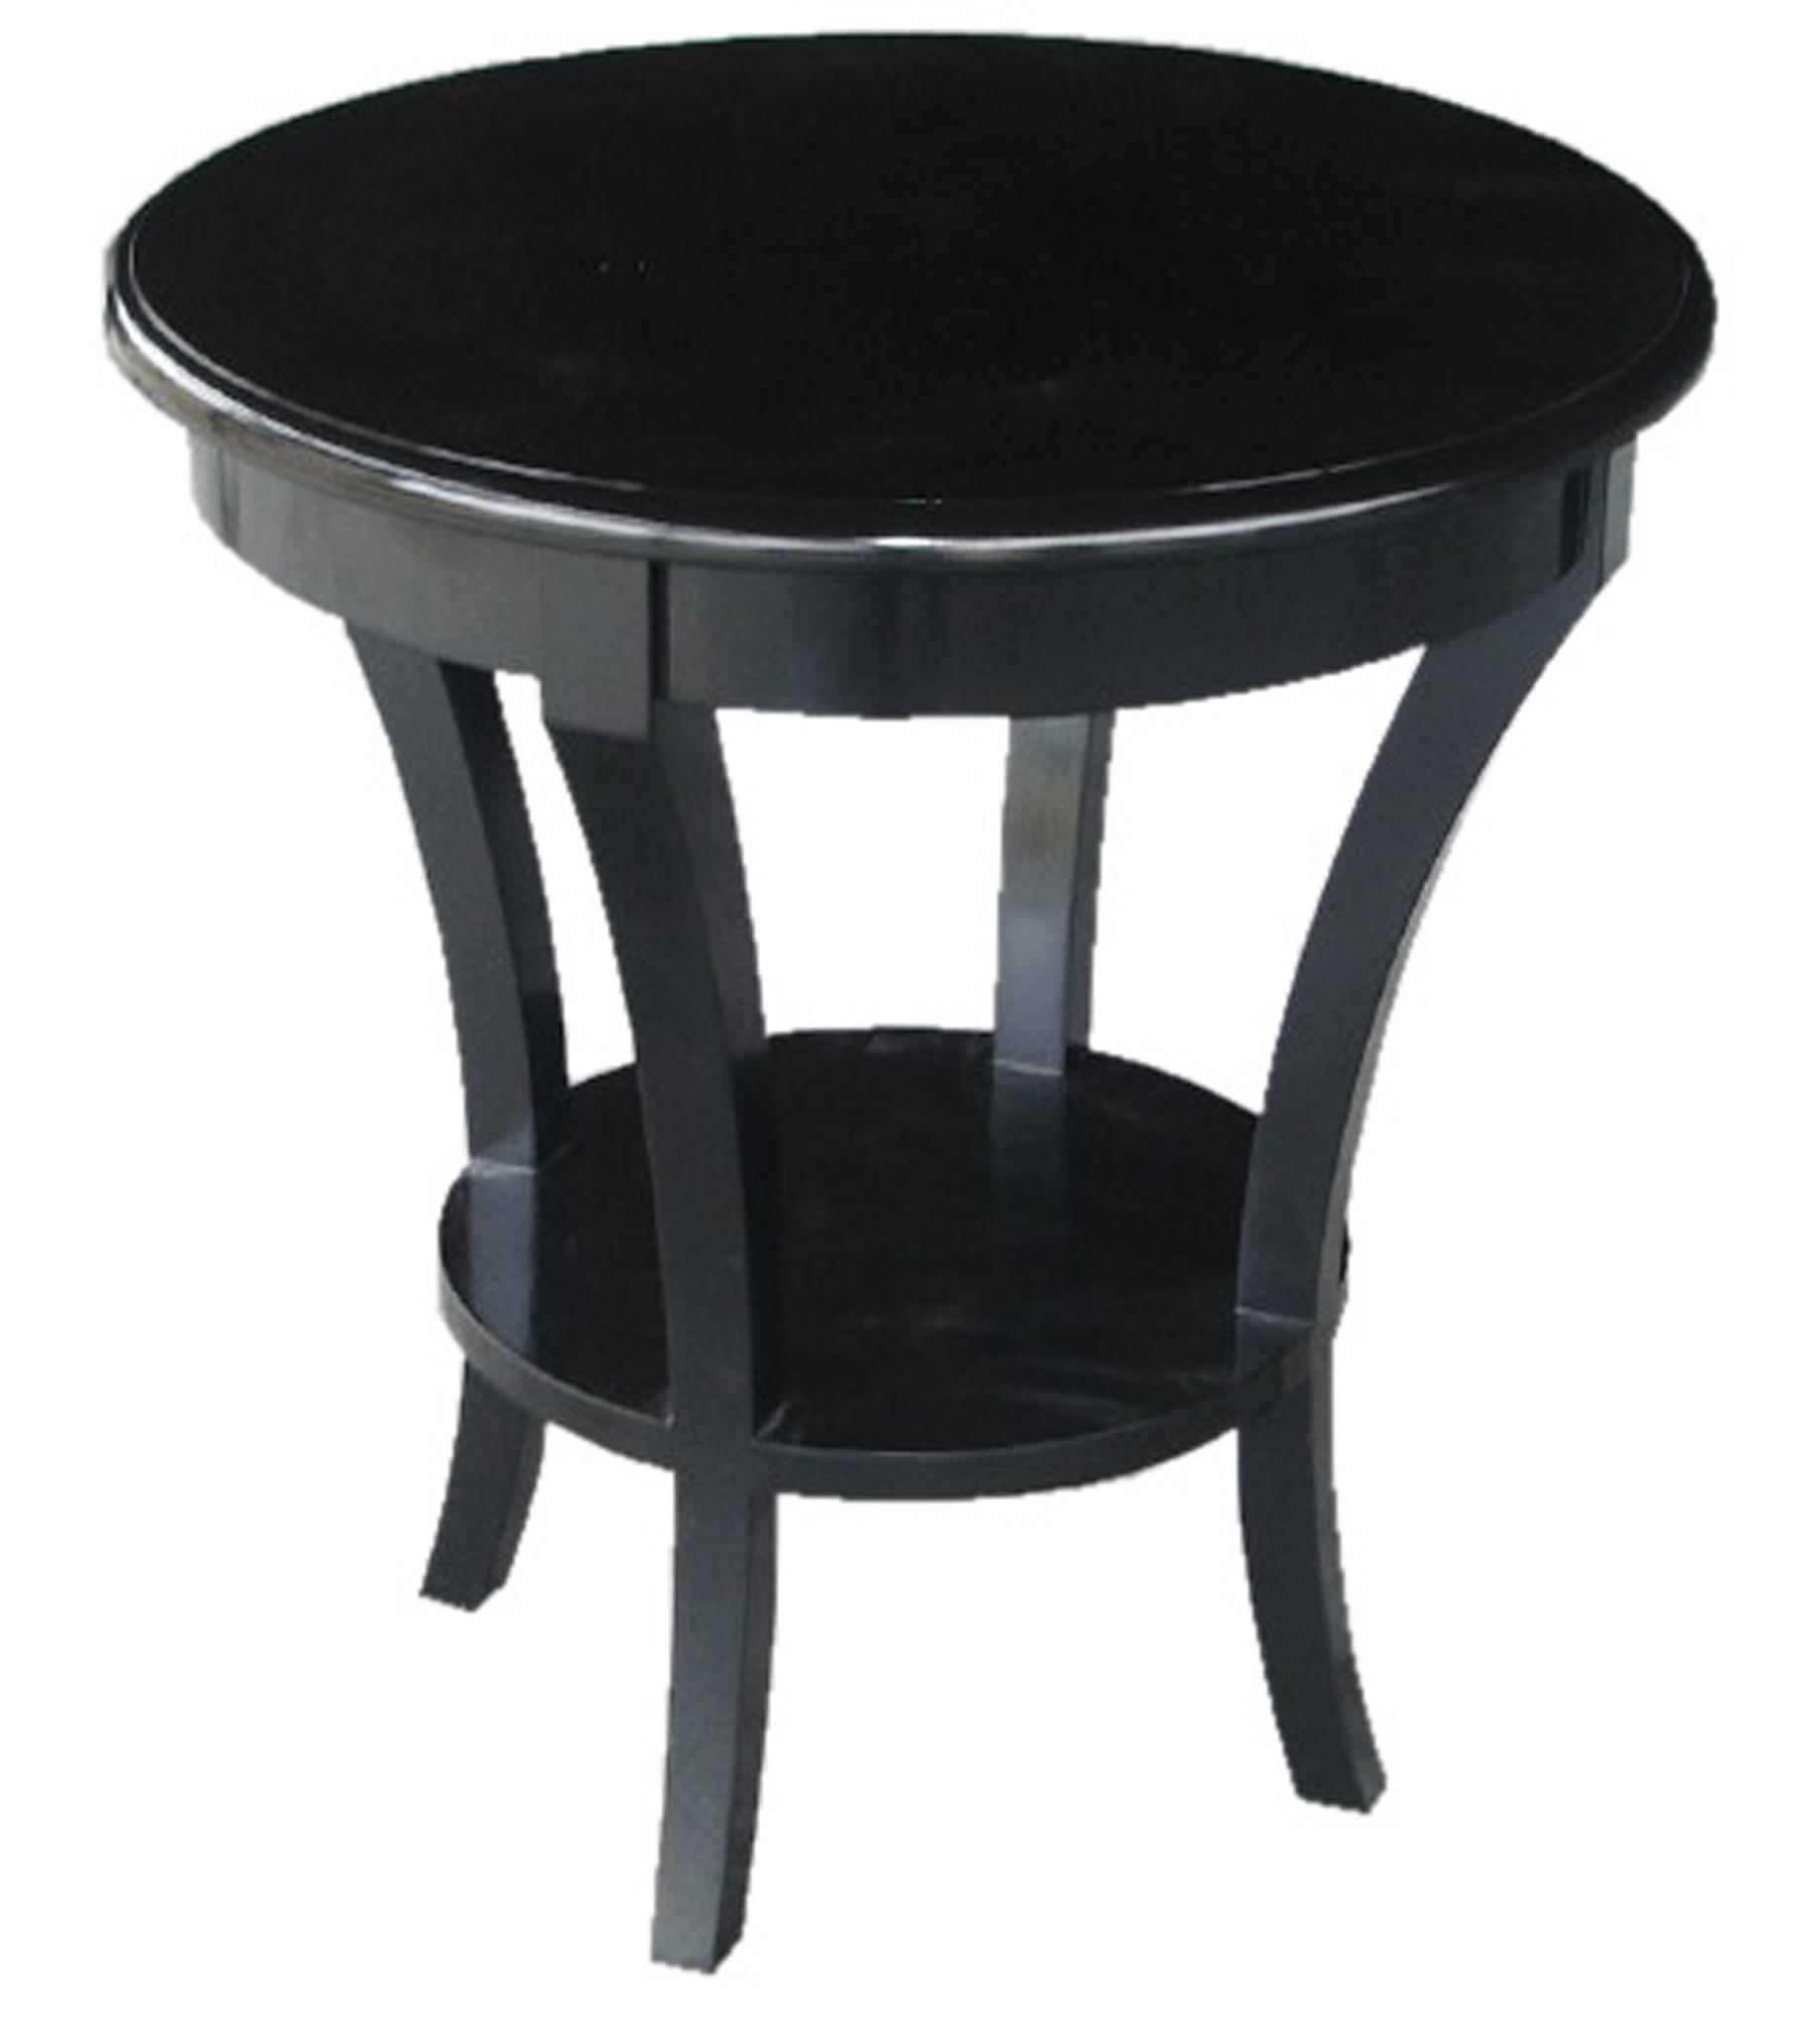 stylish black round accent table with wooden side curvy legs having harper wood and metal tablecloth for small farnichar quilted runners placemats patterns antique white end